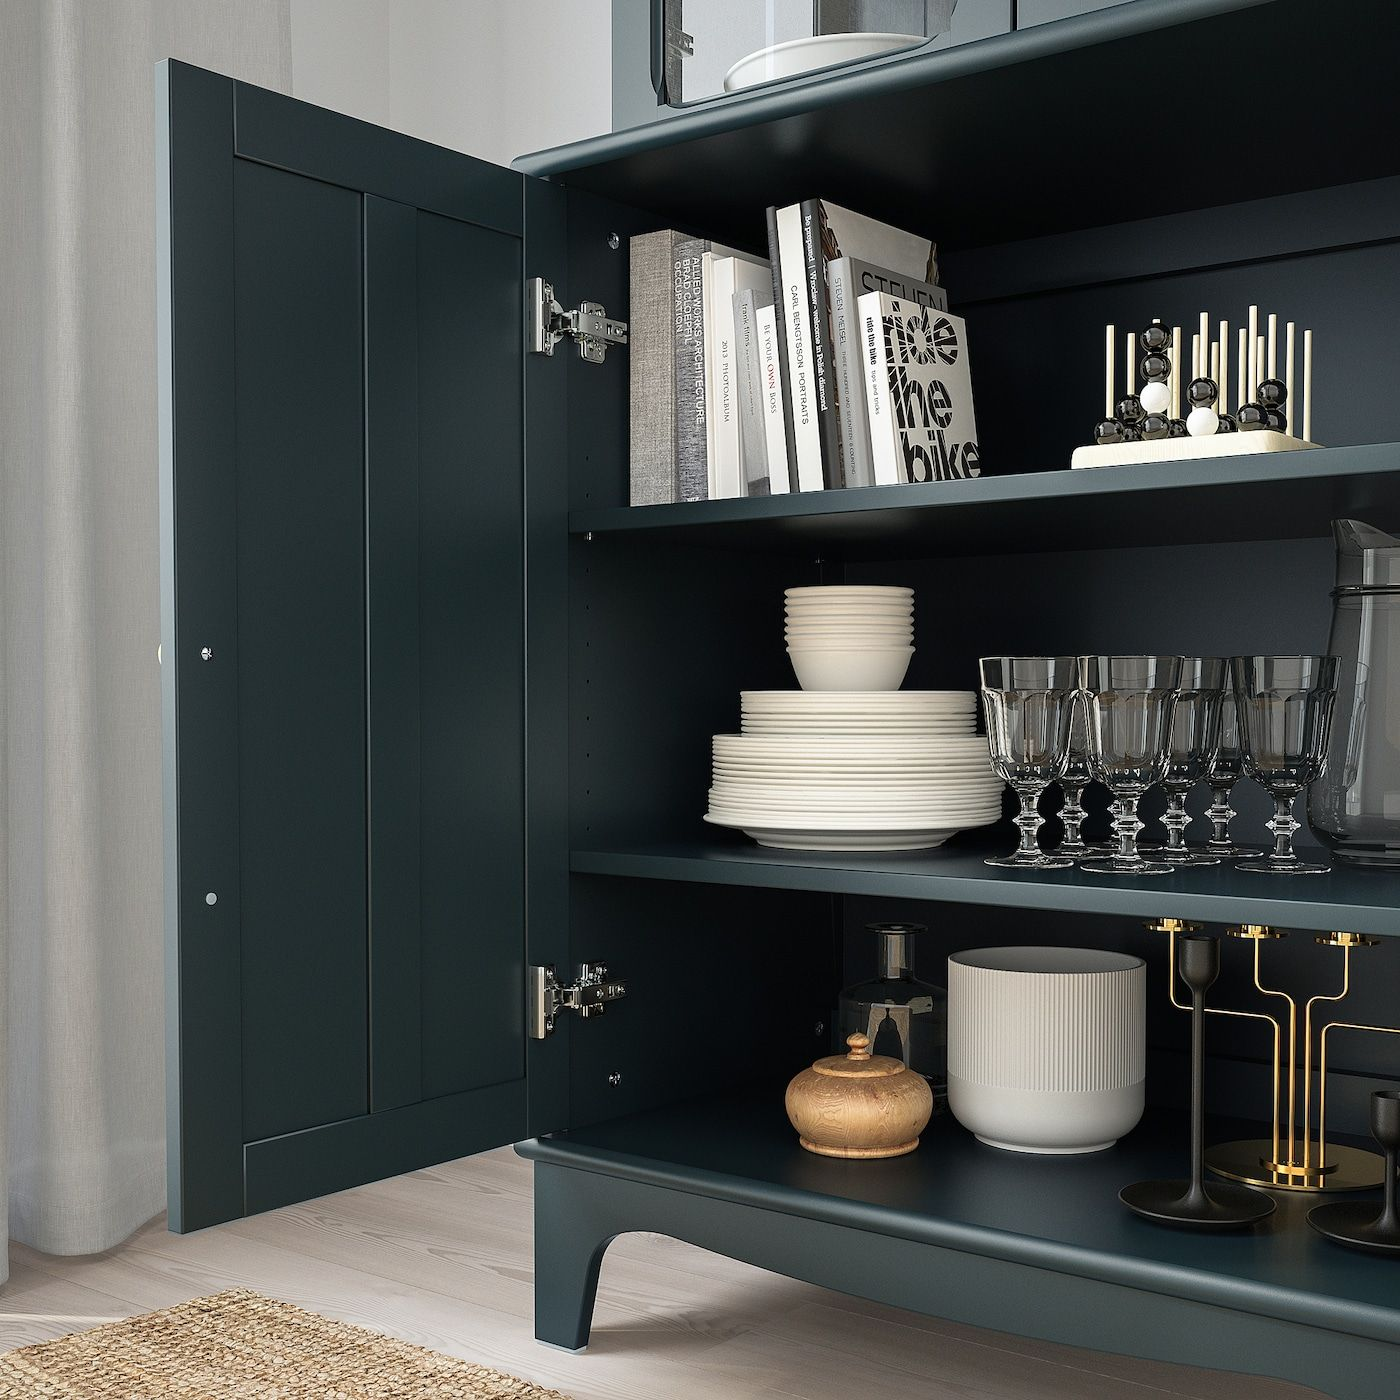 Lommarp Cabinet With Glass Doors Dark Blue Green 337 8x783 8